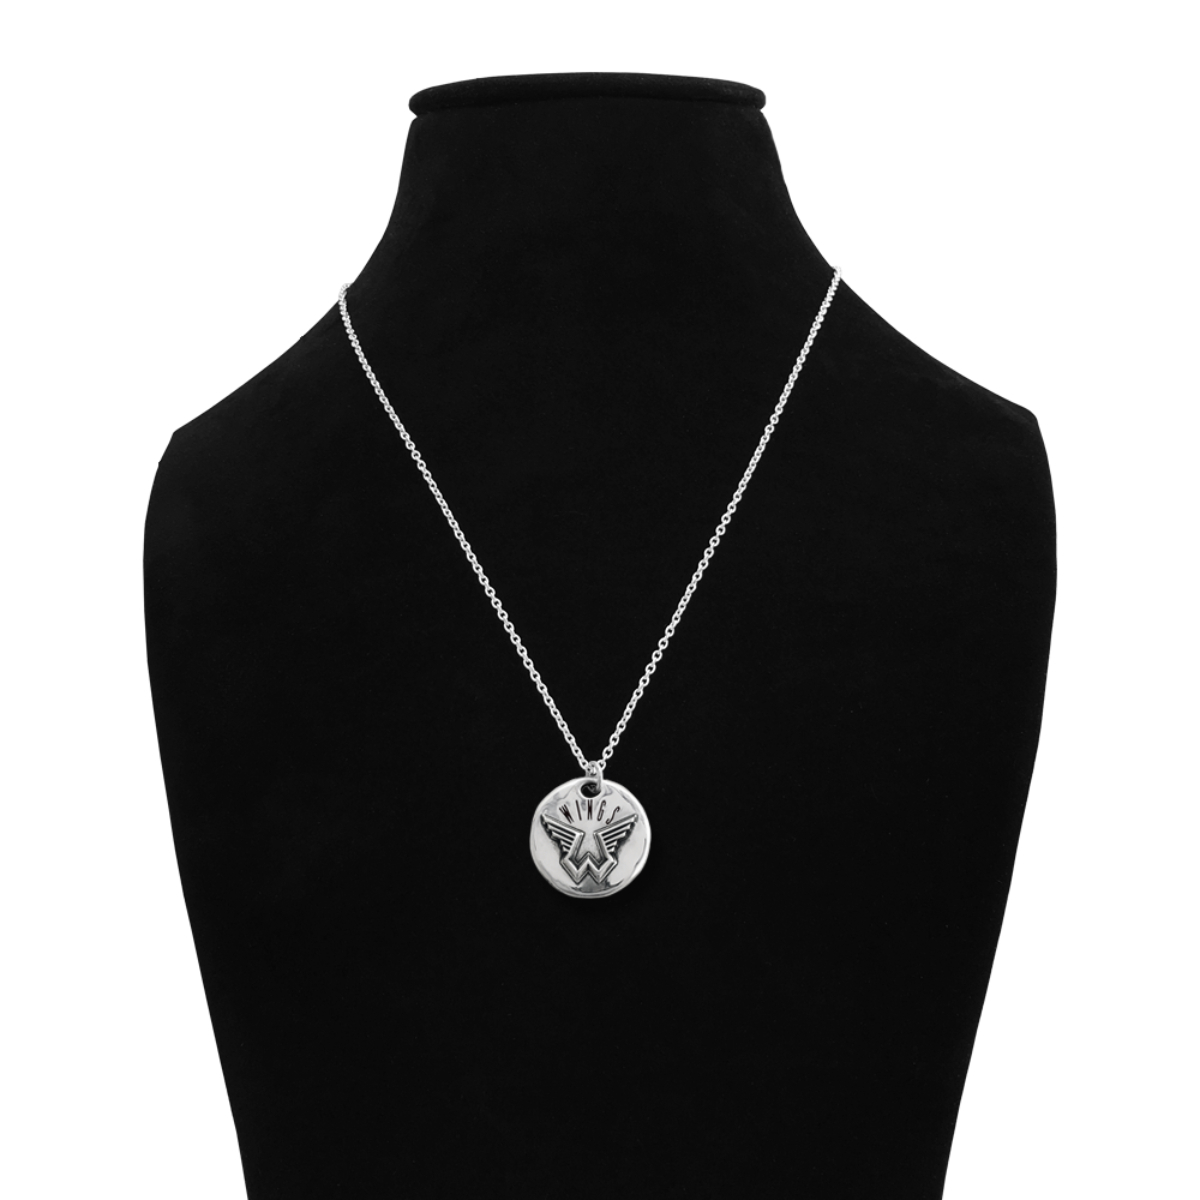 Pennyroyal Wings Pendant Silver Necklace